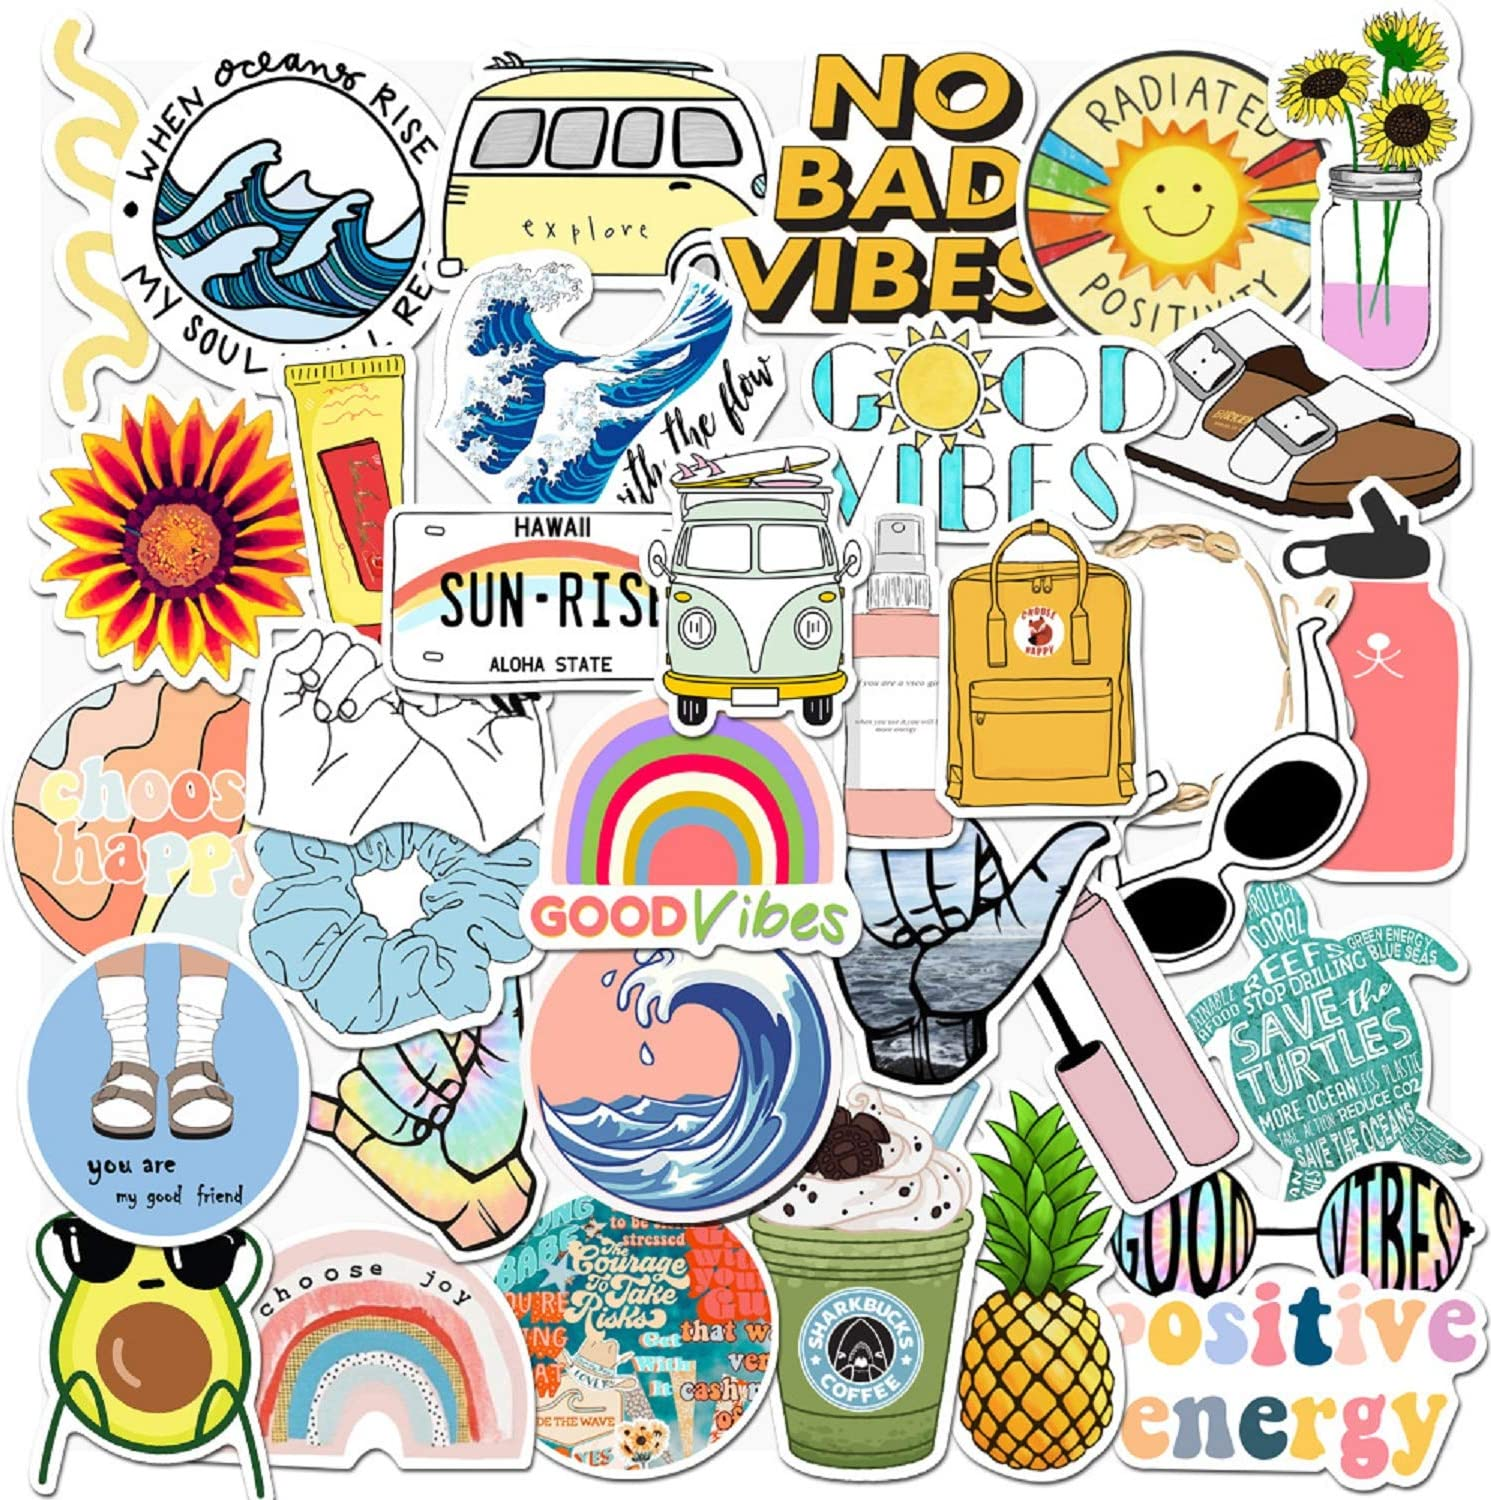 VSCO Vinyl Cute Stickers, 35 PCS Waterproof Aesthetic Stickers for Laptop, Computer, MacBook, iPad, Cellphone, Hydro Flask, Water Bottle, Luggage, Great for Kids, Teens, Girls, Women